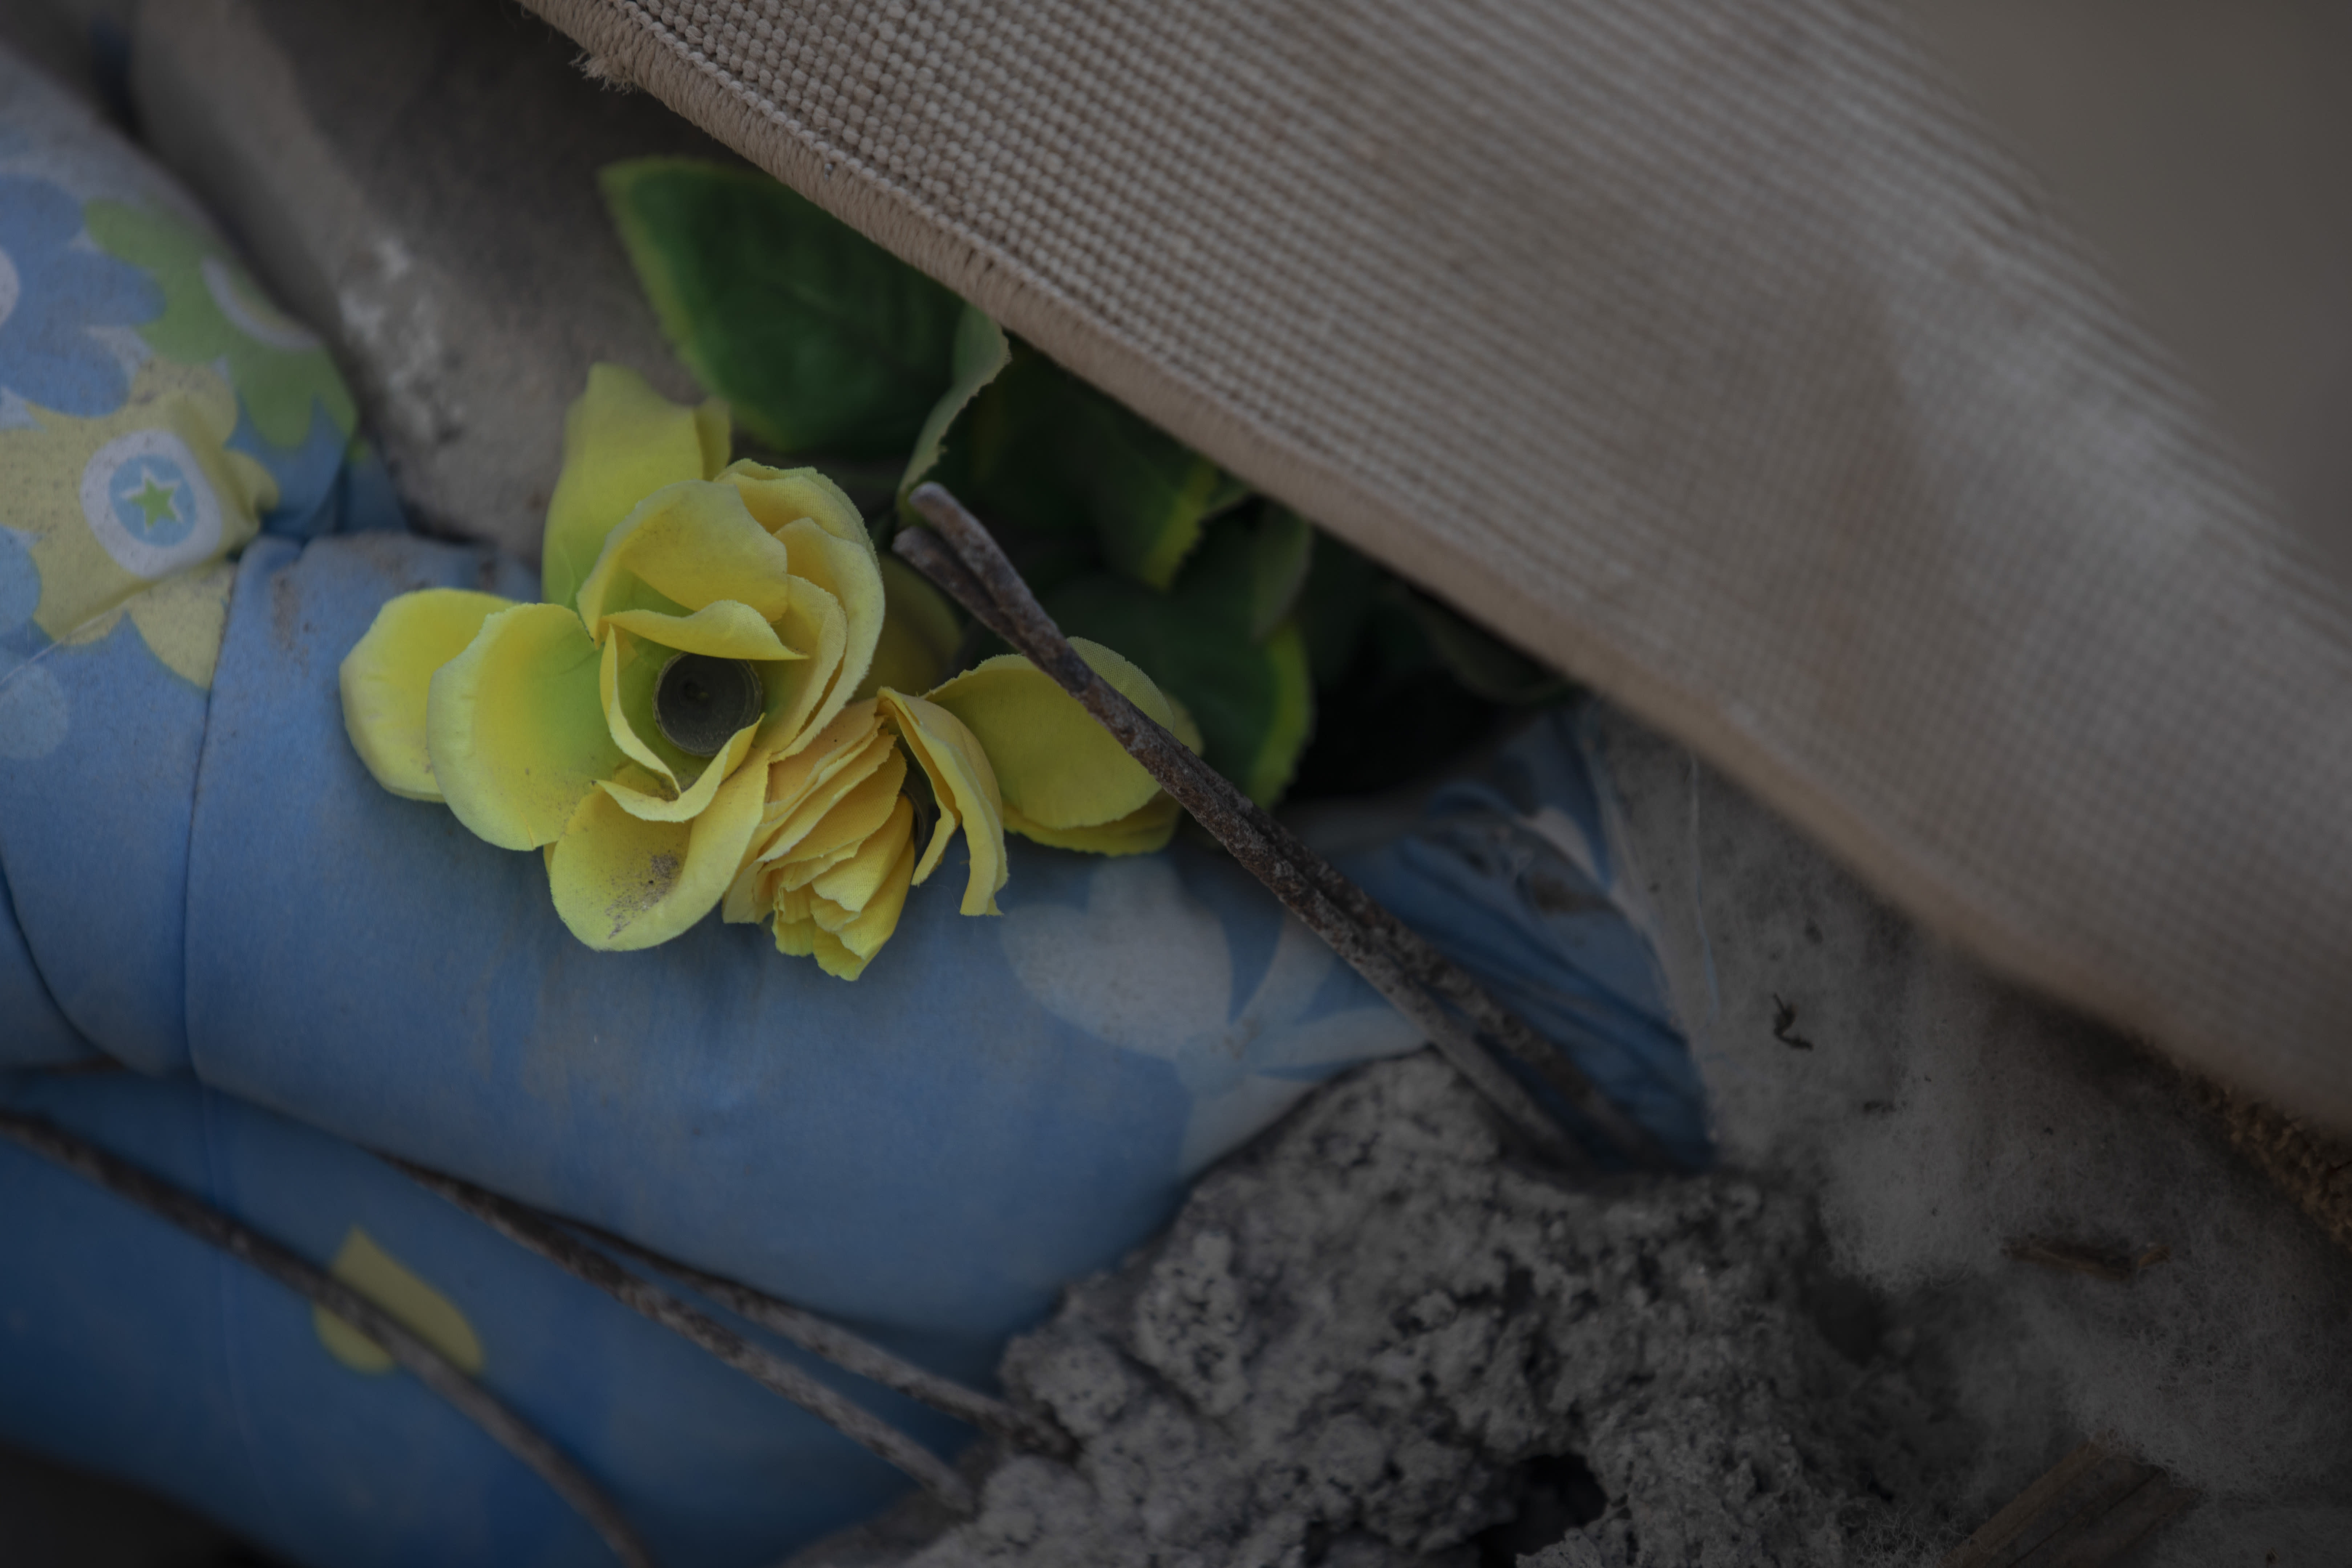 In this Wednesday, Nov. 27, 2019 photo, a plastic flower among rubbles of a collapsed building damage building in Thumane, western Albania following a deadly earthquake.(AP Photo/Petros Giannakouris)